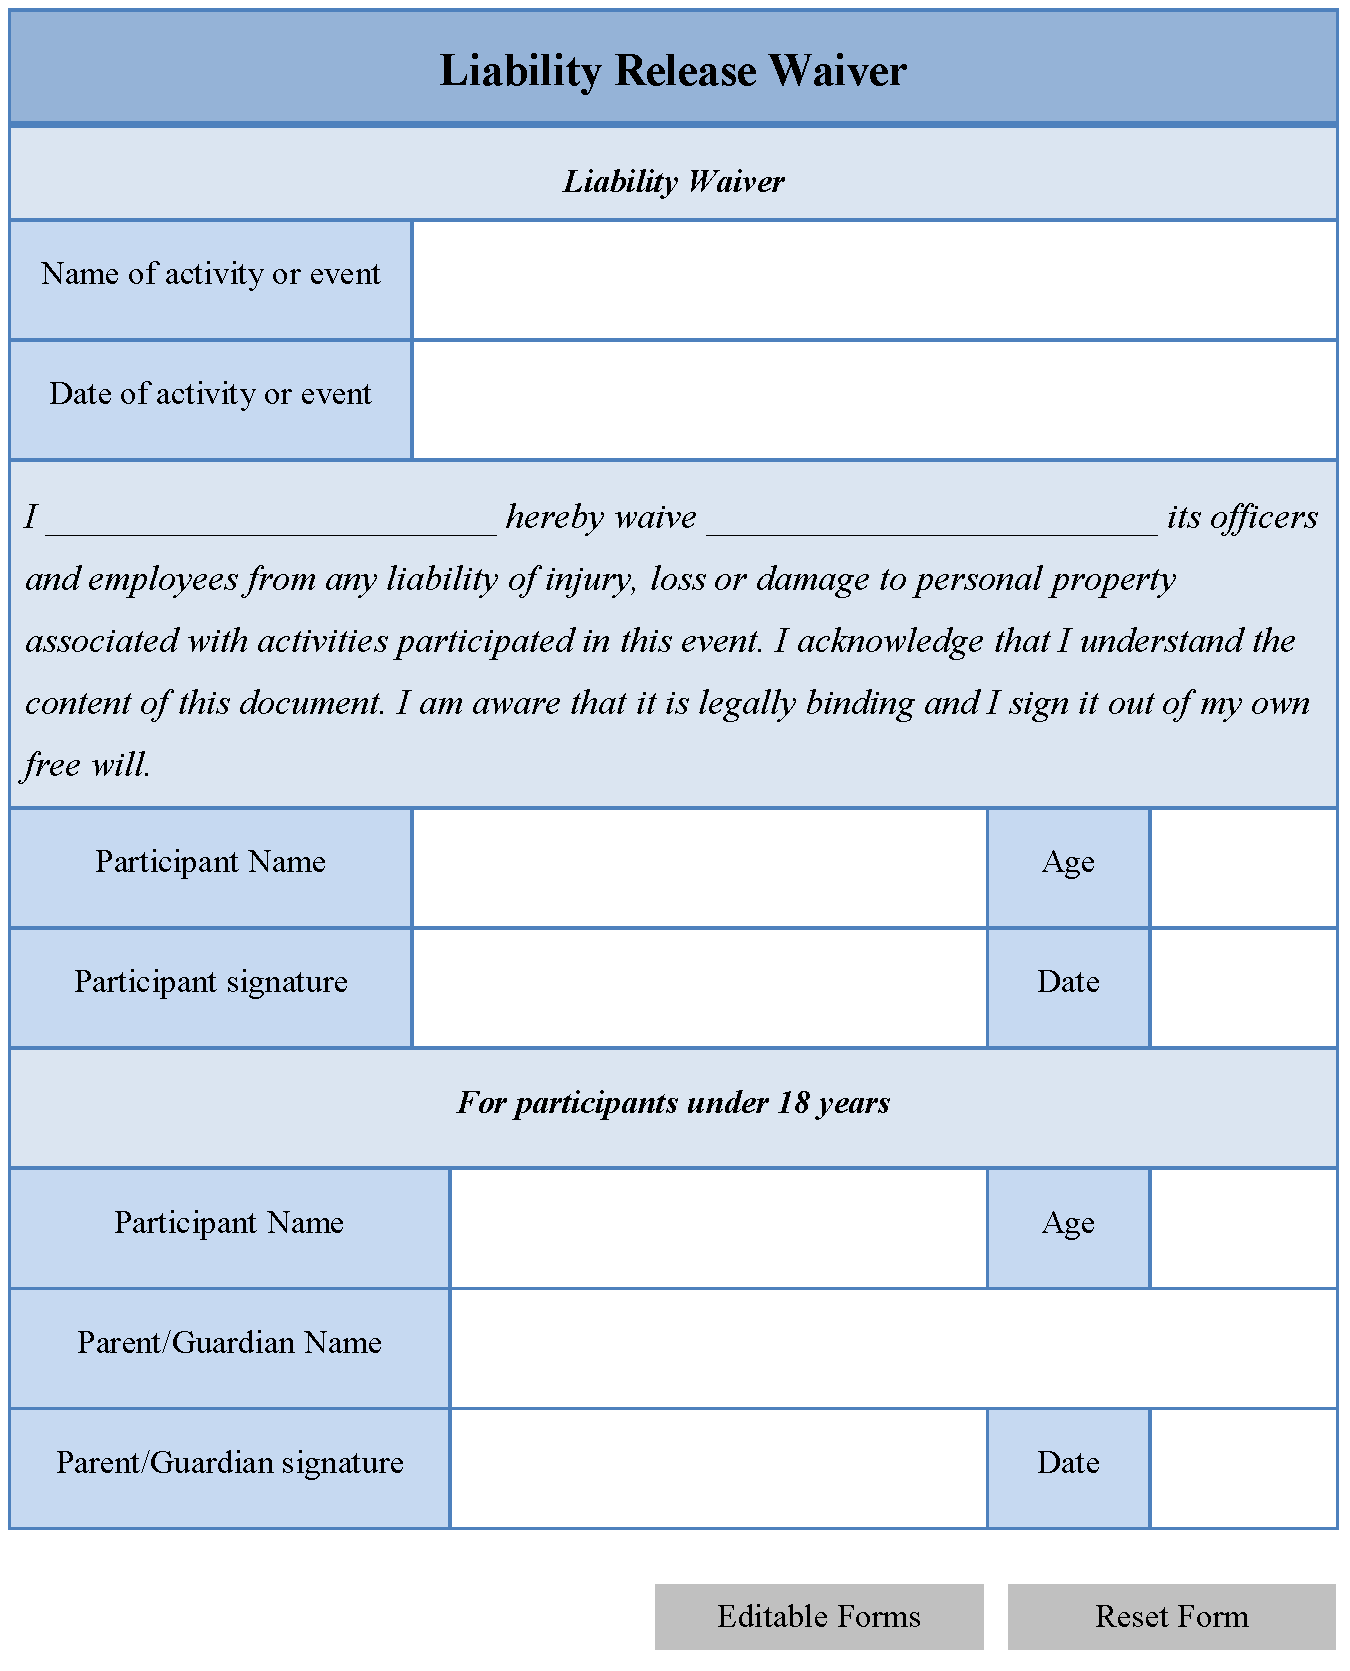 Liability Waiver Form | Editable Forms